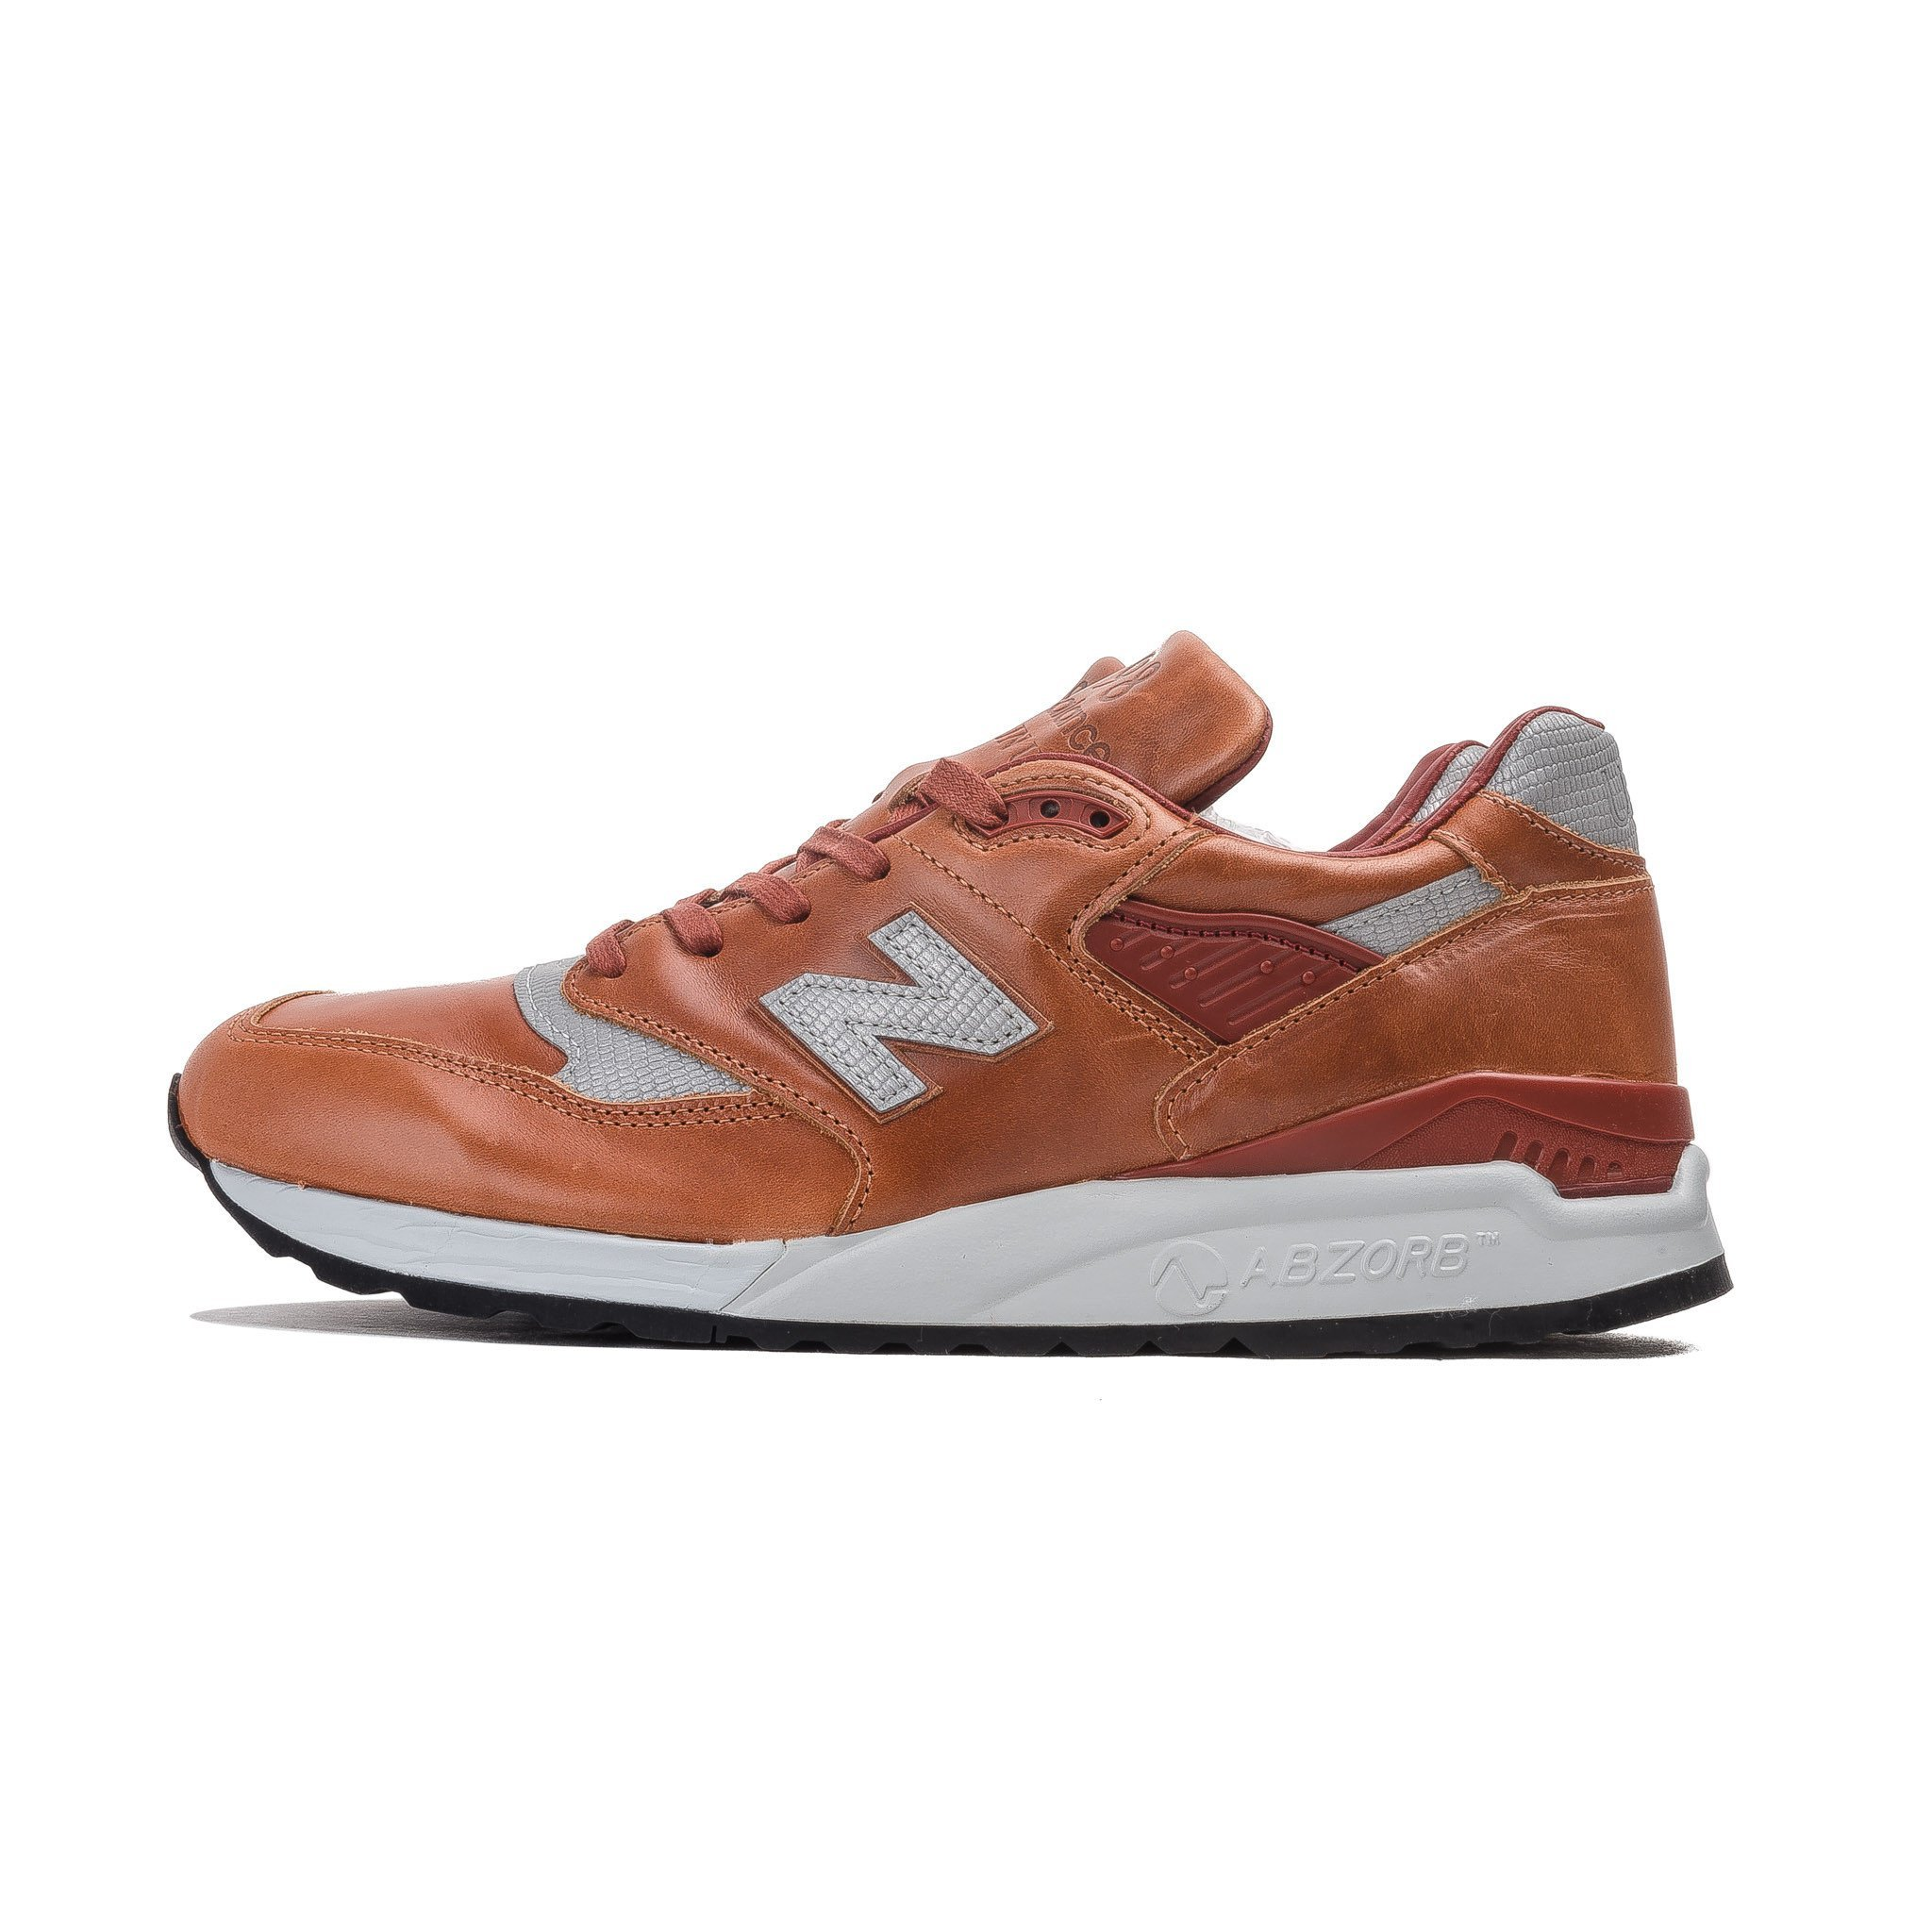 Mens New Balance 998 Made In USA Bespoke Horween Leather ...